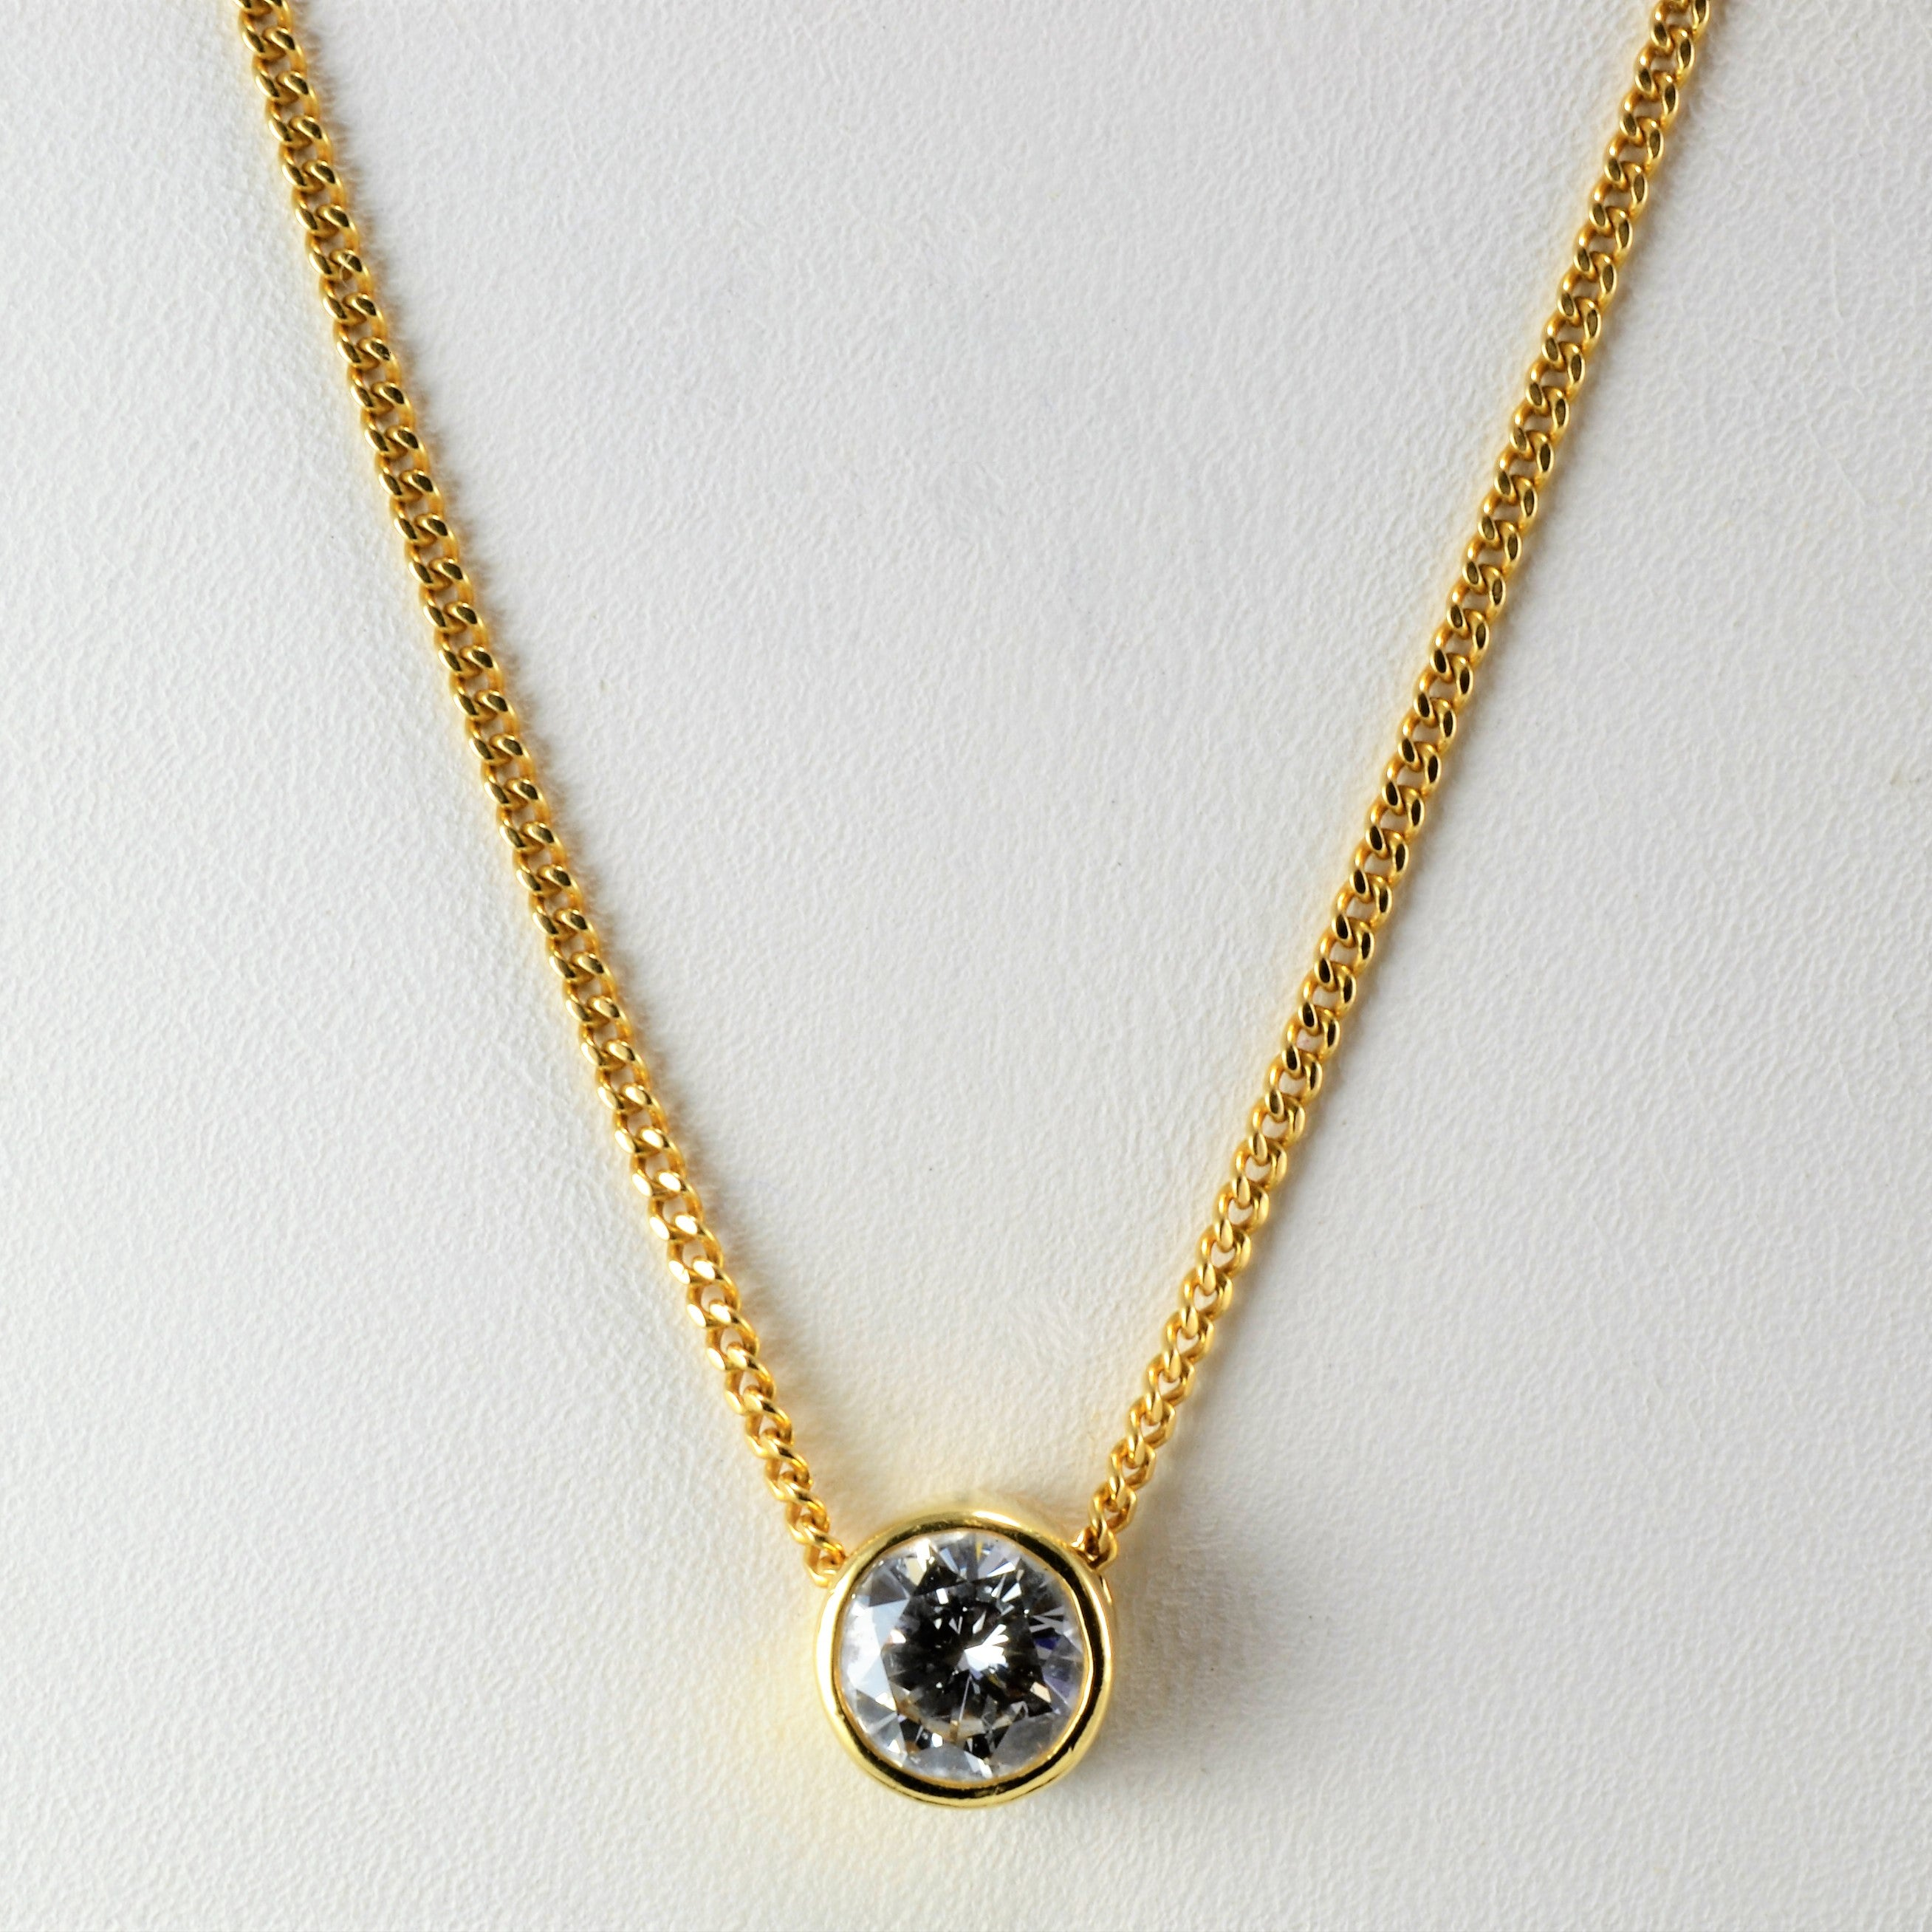 yellow necklace solitaire shop sku diamond length gold